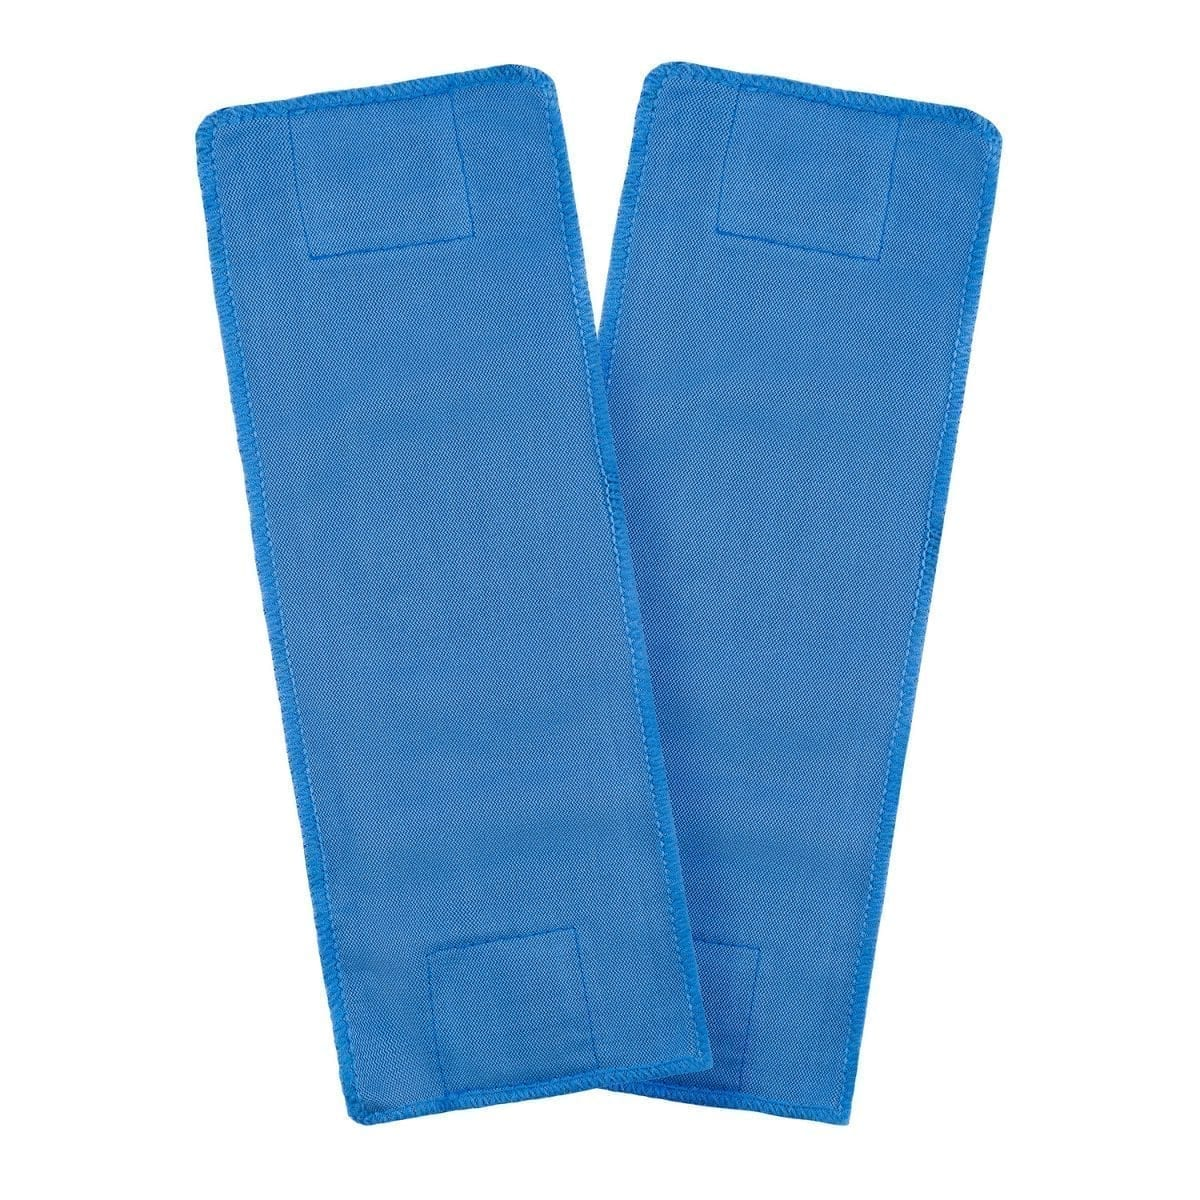 Replacement Microfiber Cleaning Cloth – Pack of 2 Pc